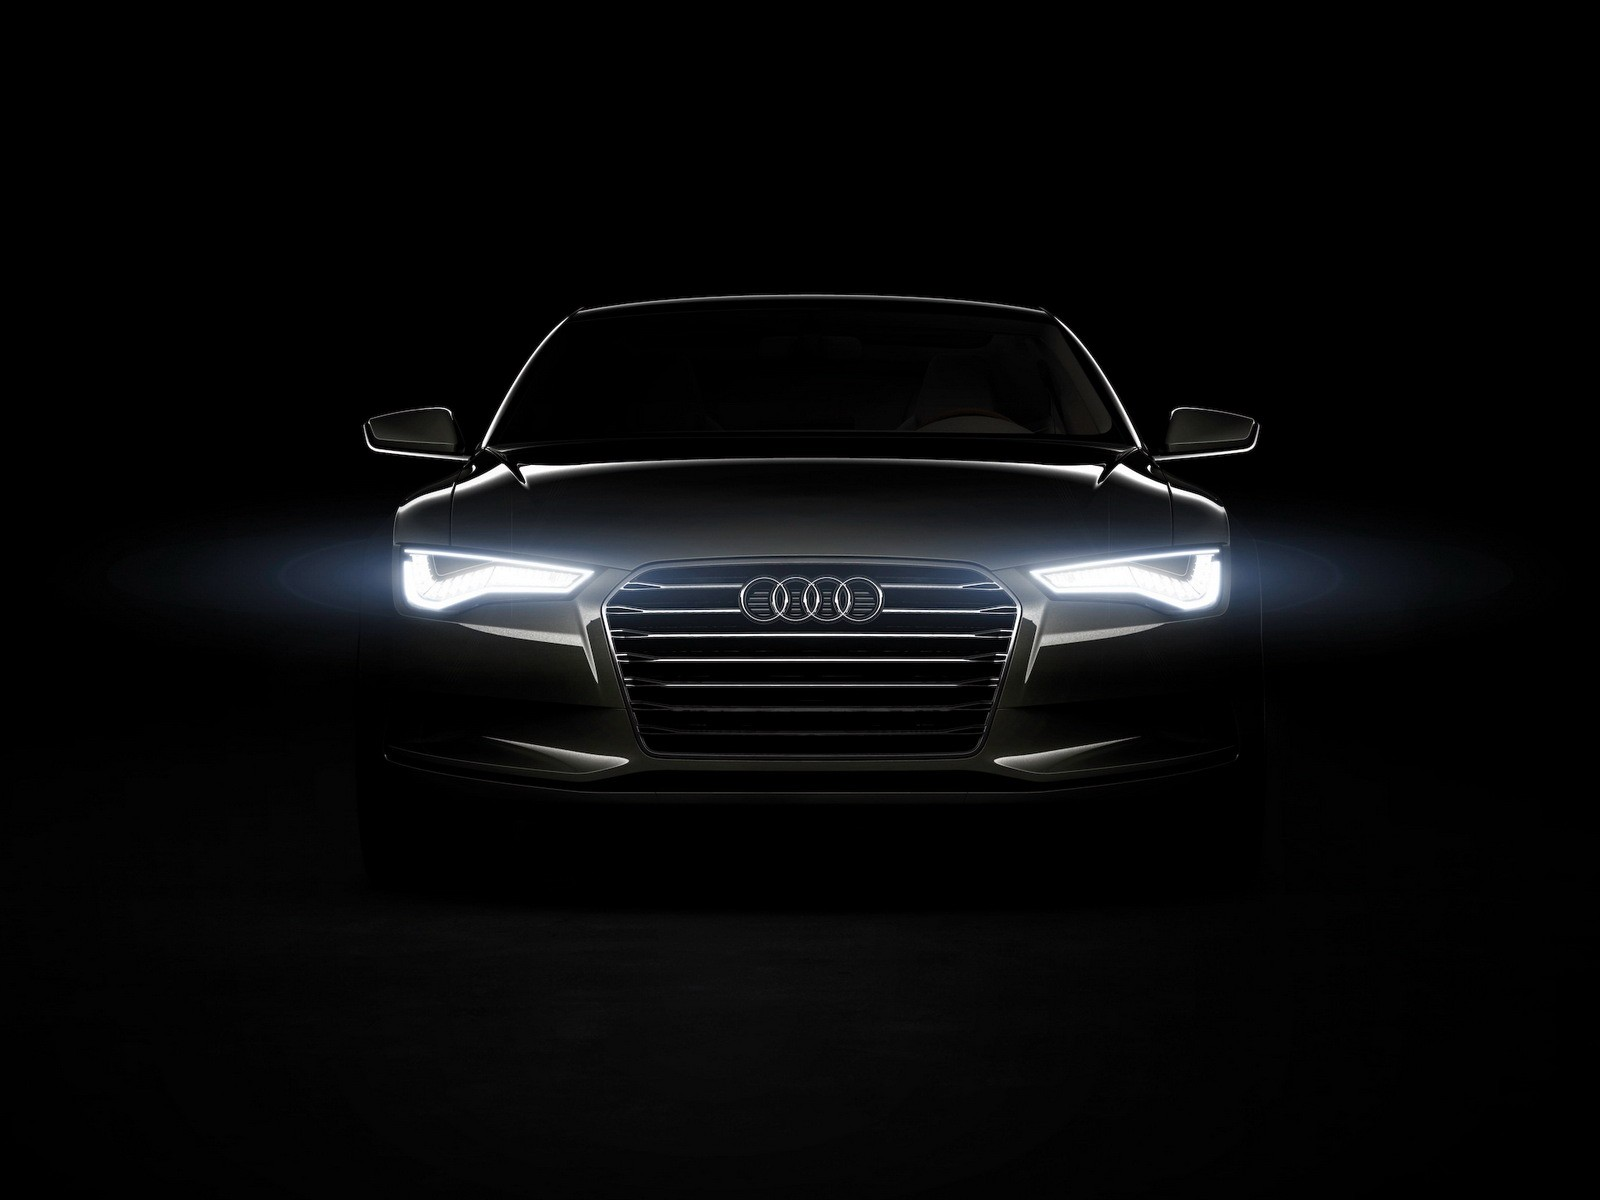 Cool HD Audi Wallpapers For Download 1600x1200